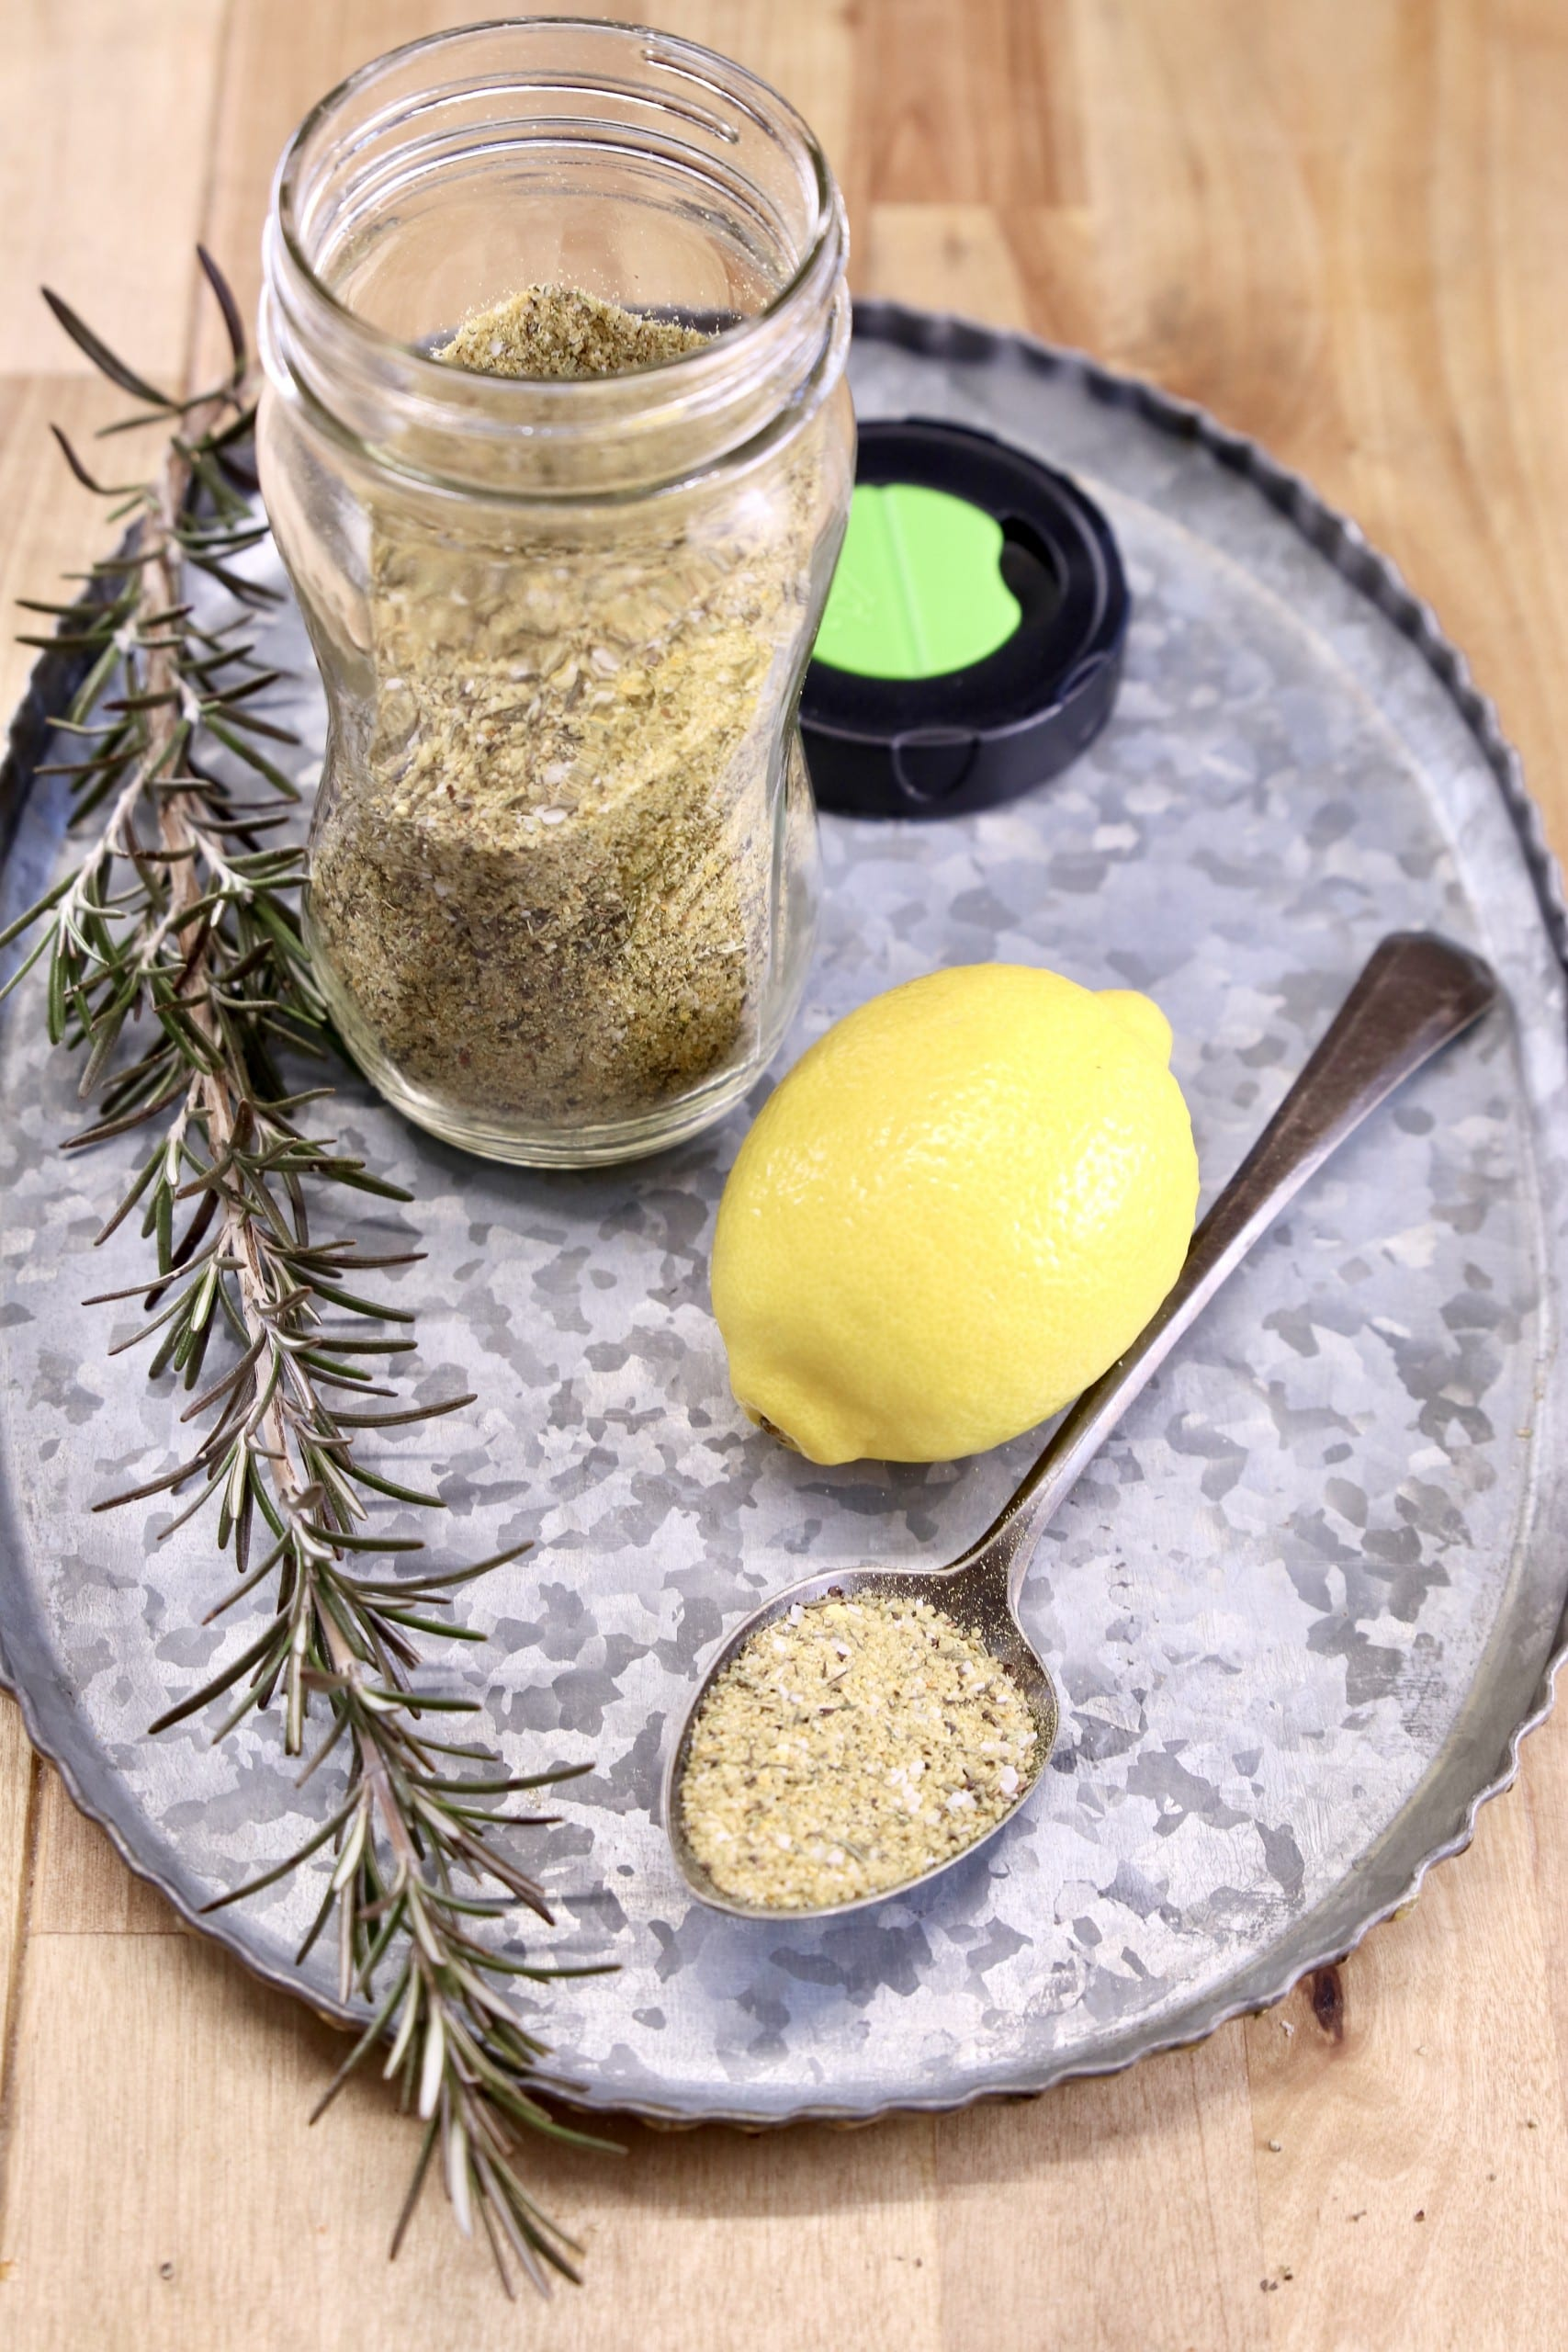 lemon and rosemary dry rub for grilling on a tray with fresh lemon and sprig of rosemary